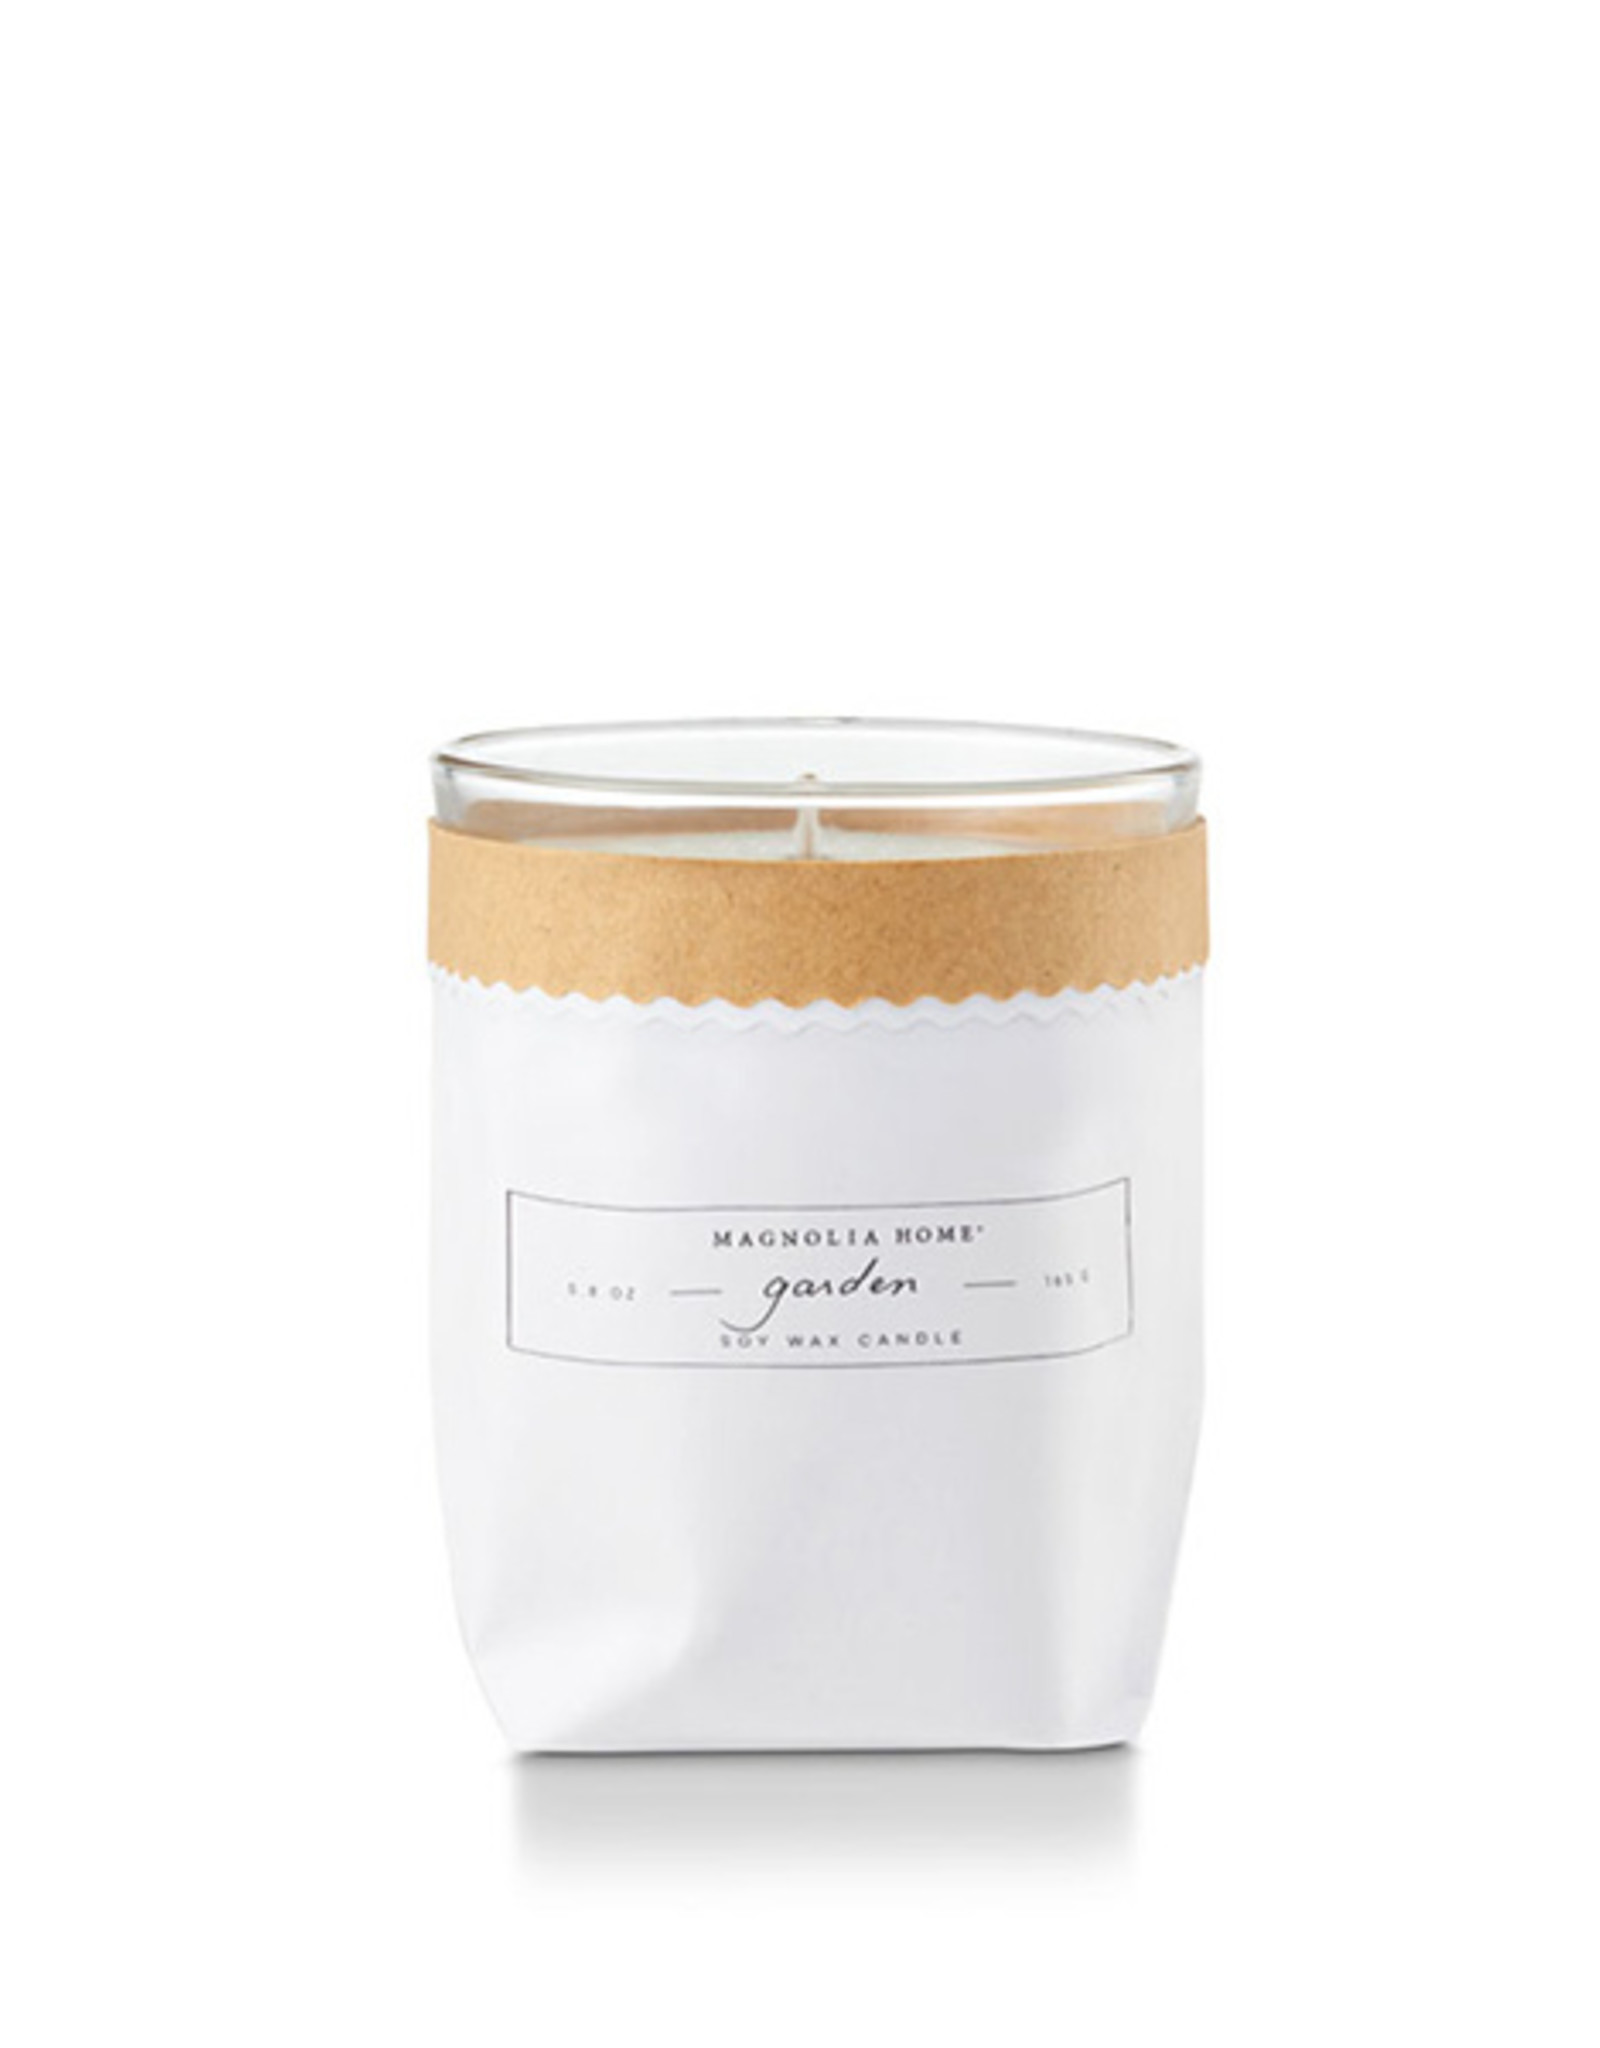 Magnolia Home - Garden Candle Bagged Glass Candle